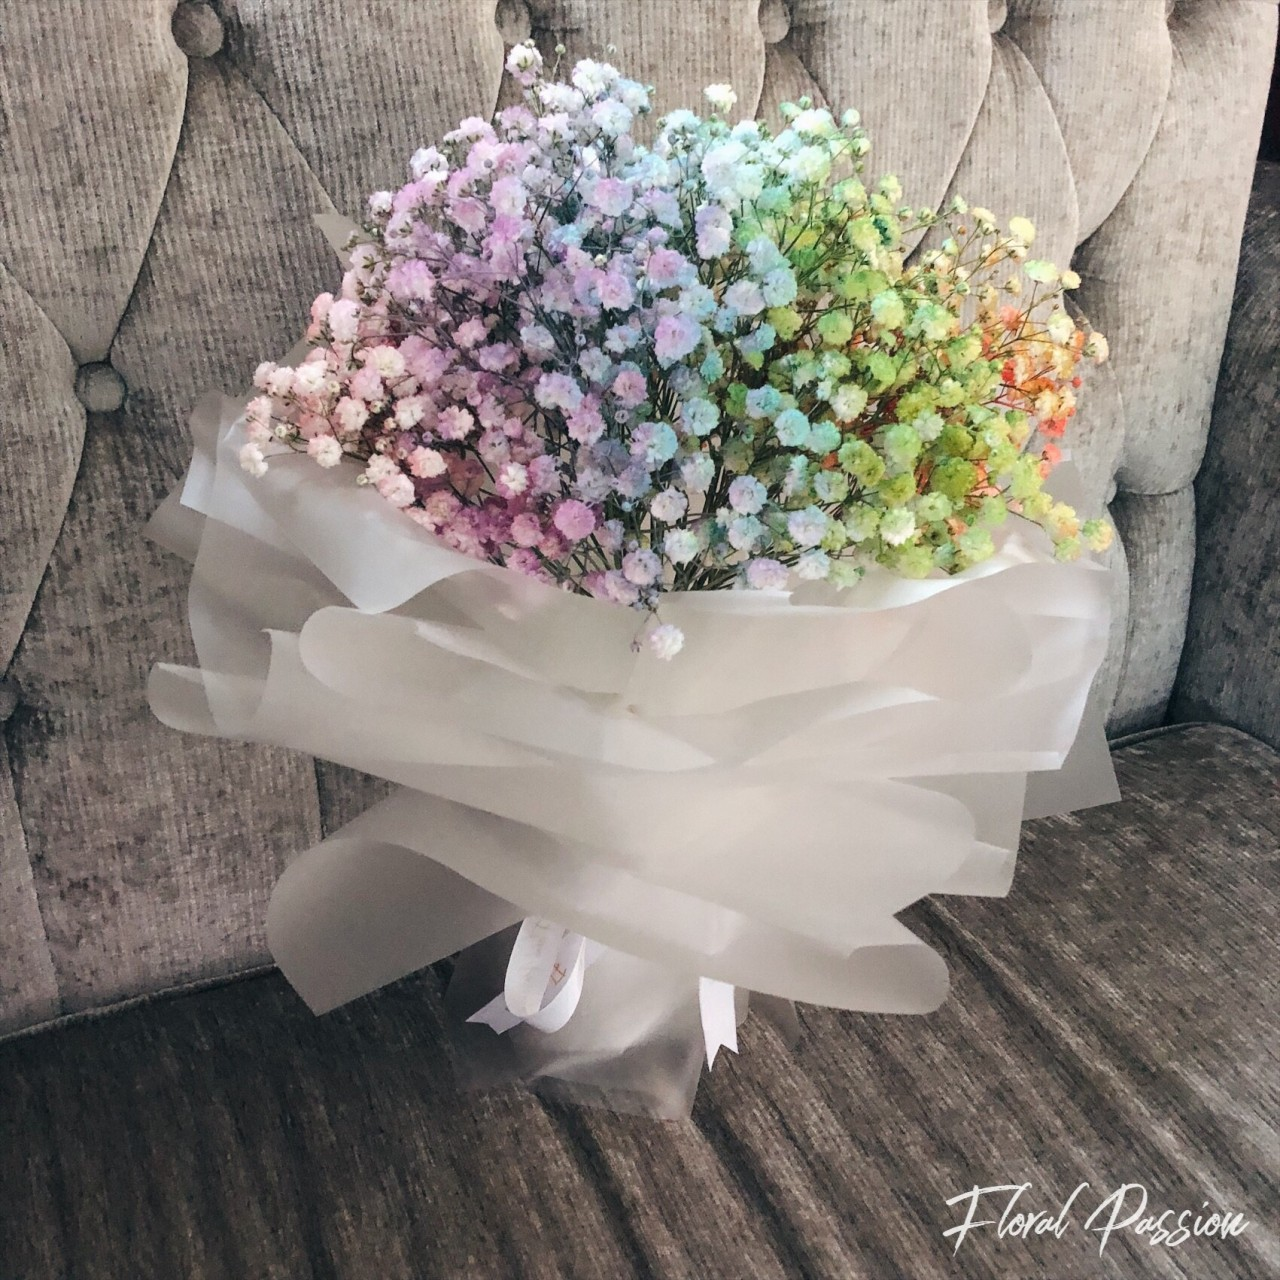 8 affordable valentines day bouquets under 50 all over singapore 1 floral passion rainbow babys breath and fluttery hydrangea bunches izmirmasajfo Choice Image